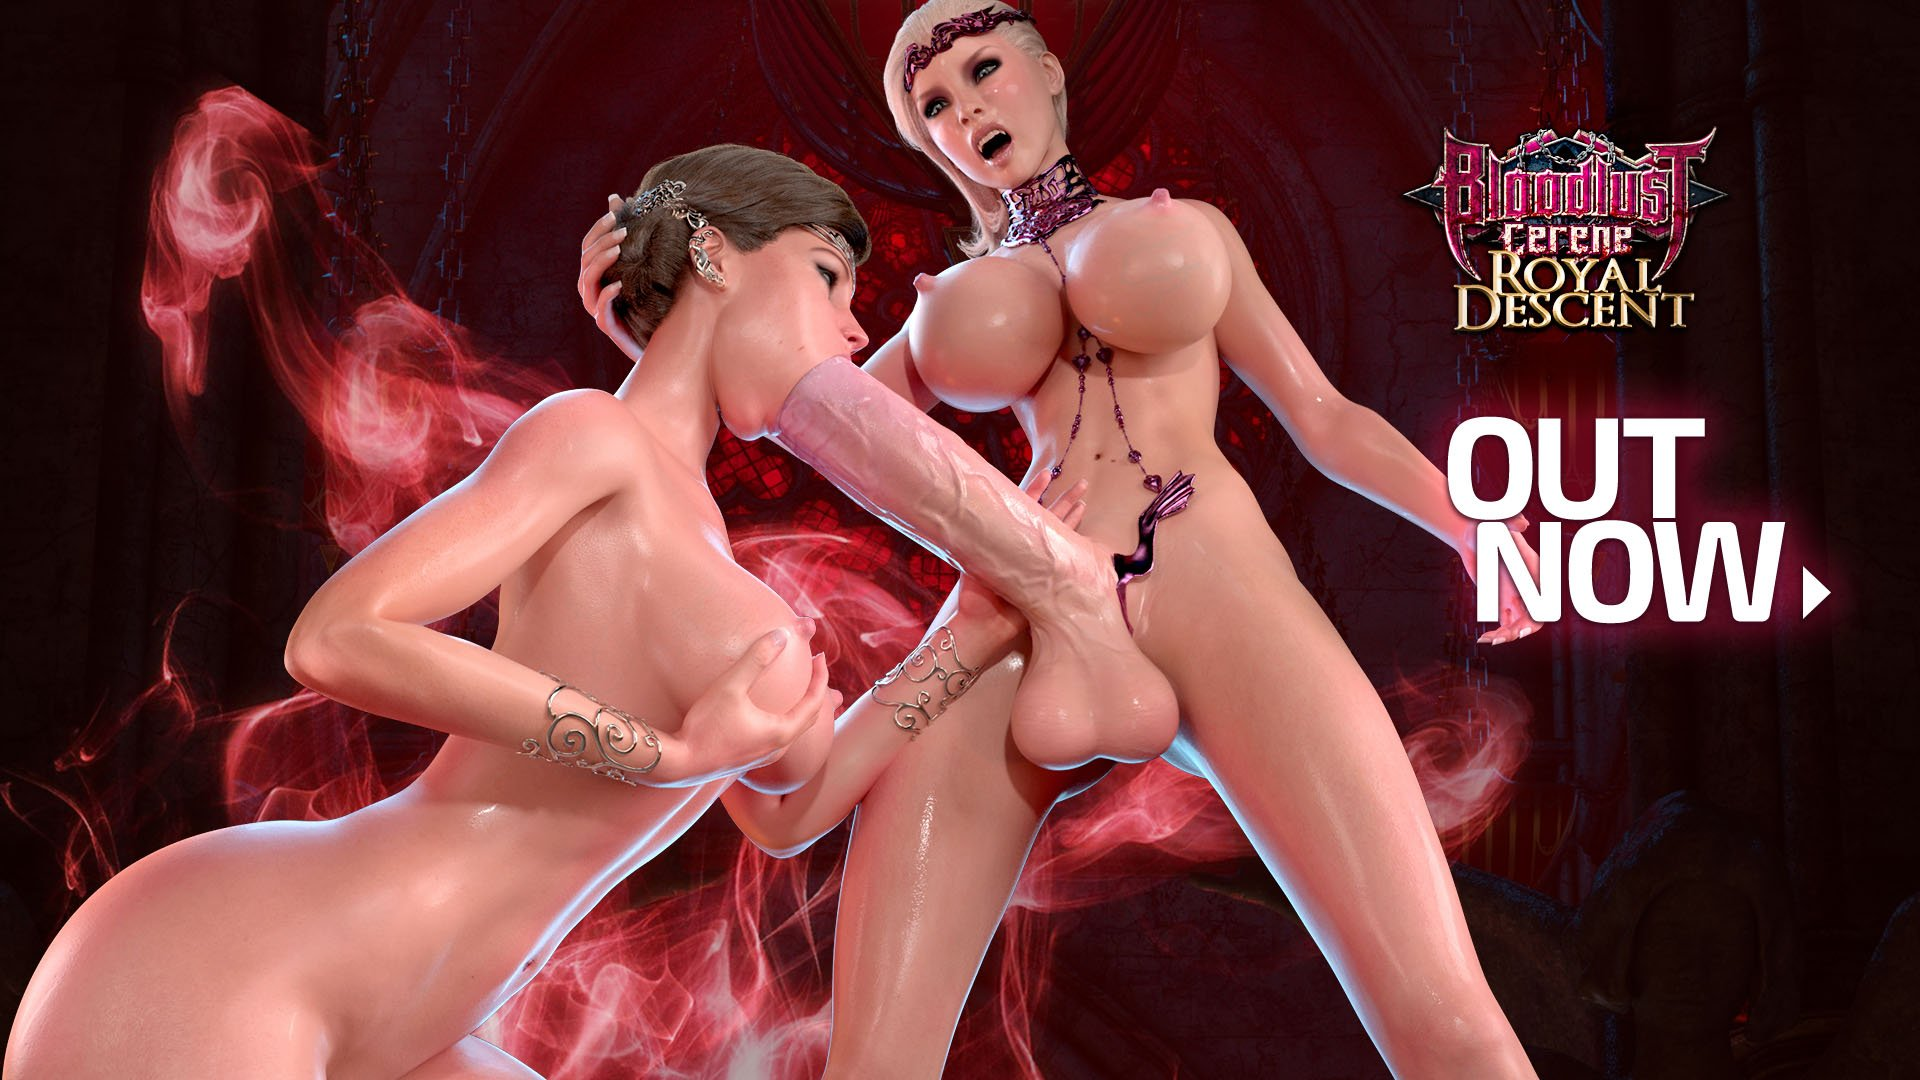 Bloodlust: Cerene - Royal Descent Out Now!